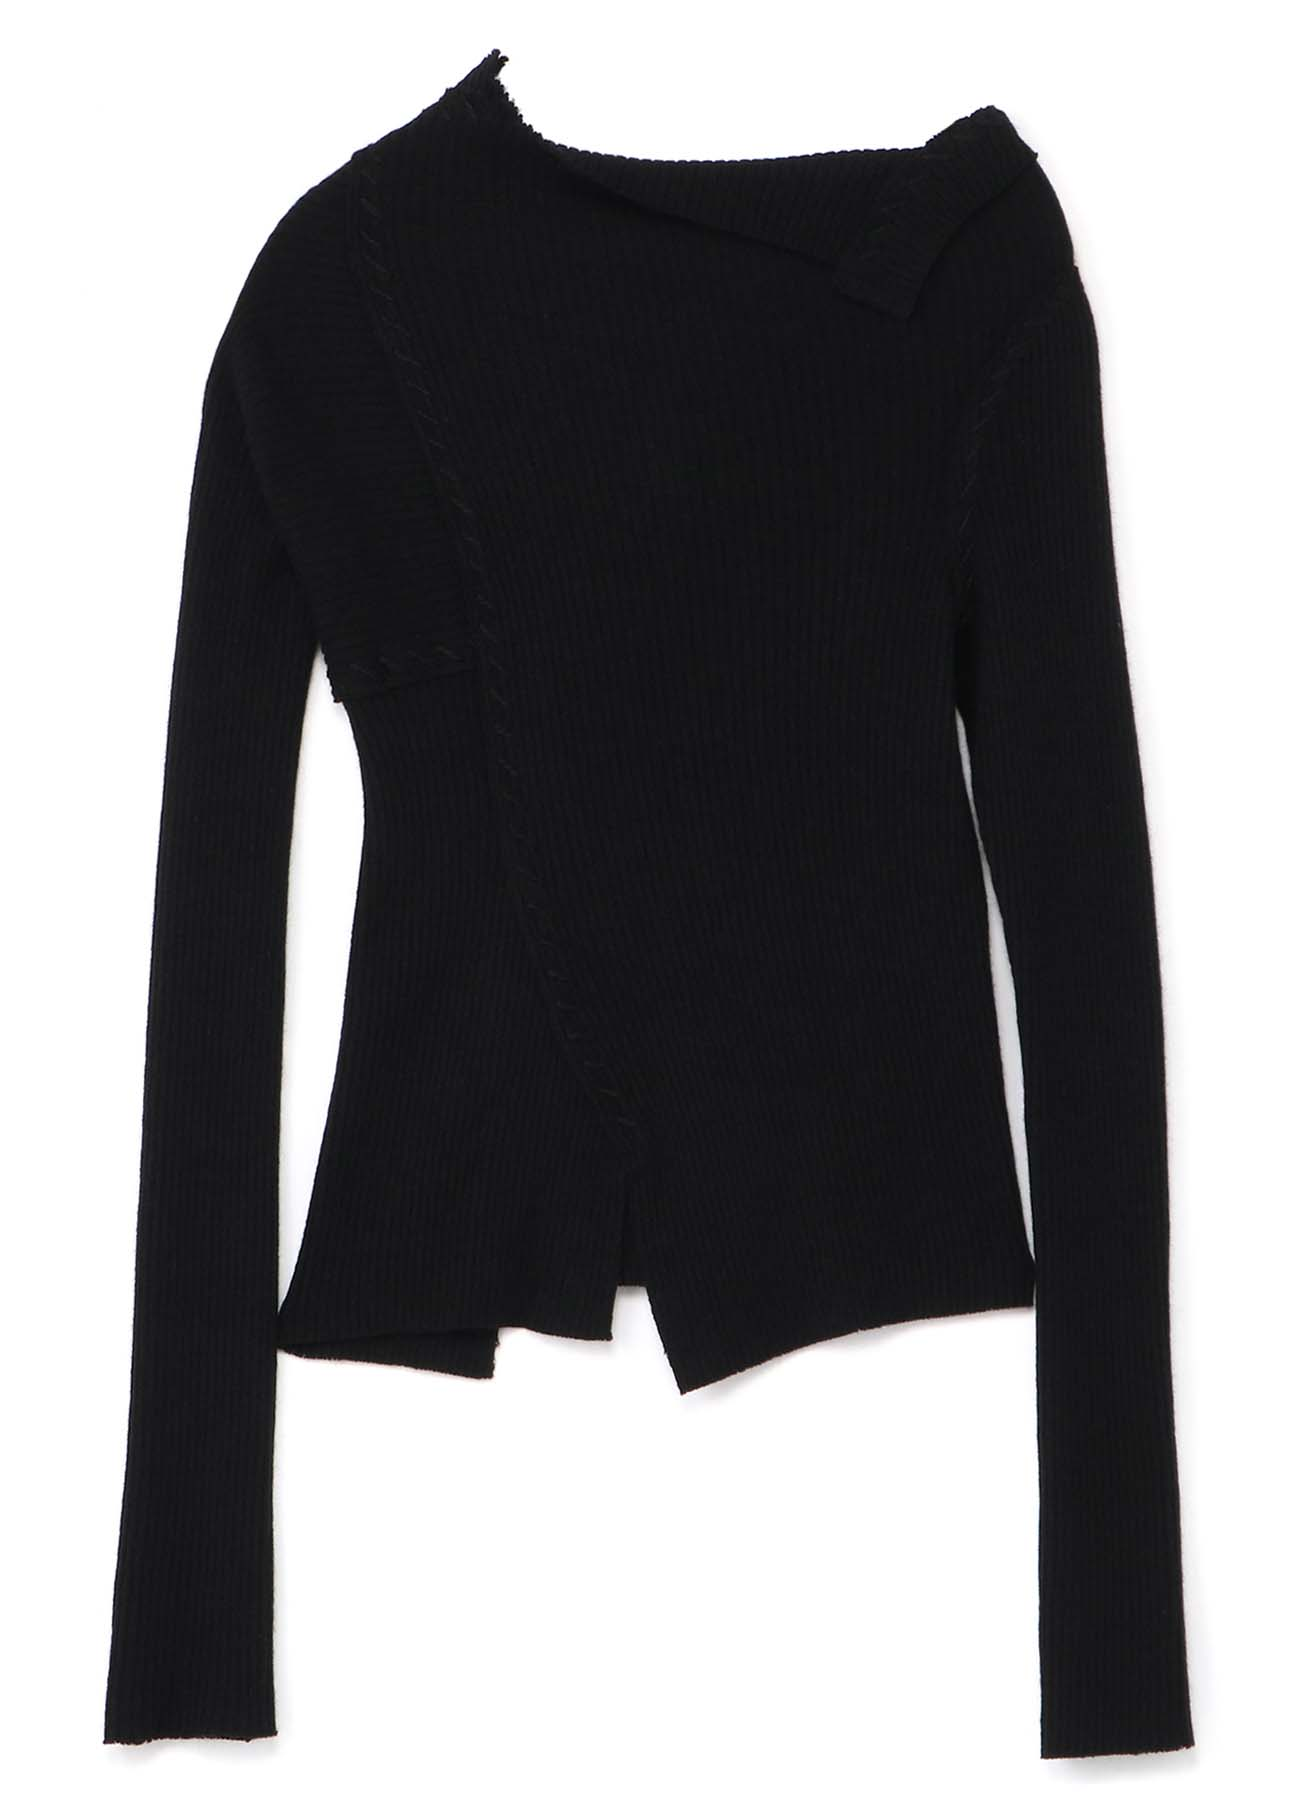 MIX UP HAND STITCH PULLOVER A